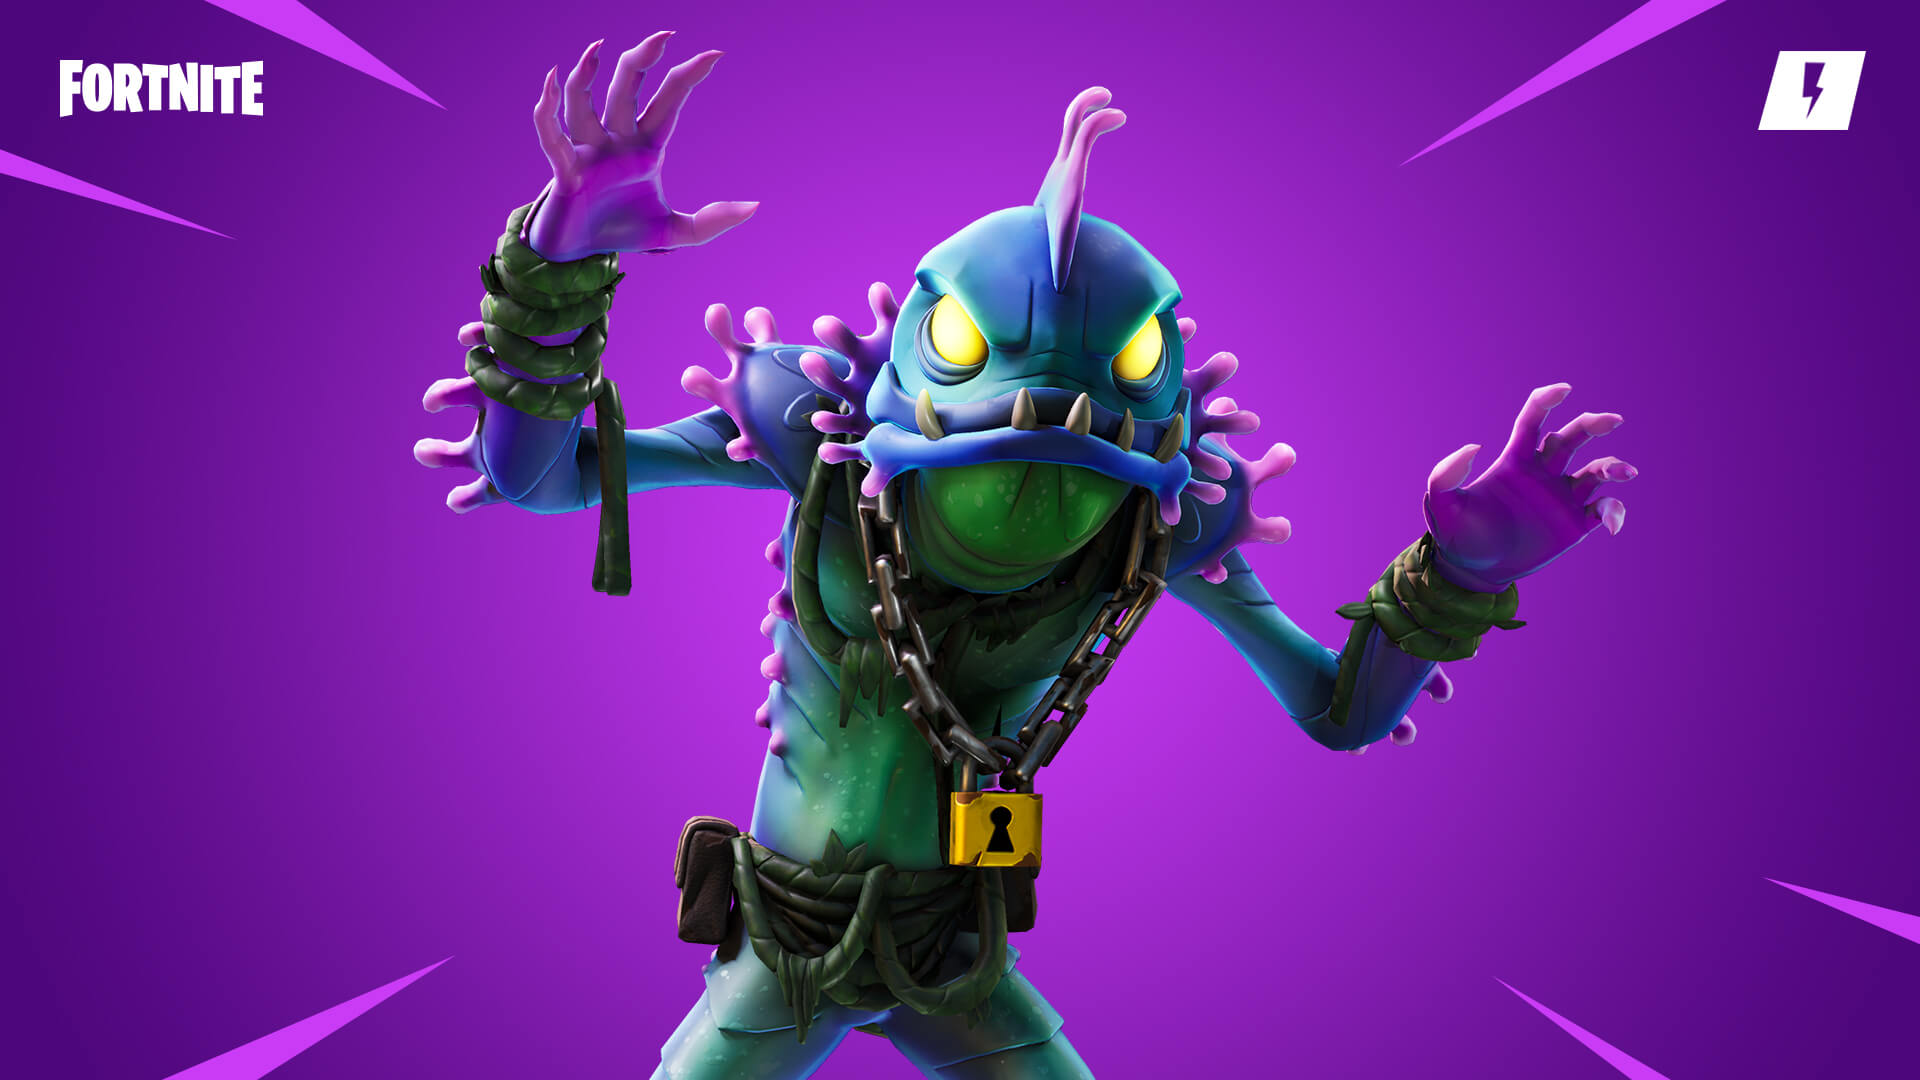 Fortnite Save The World Mermonster Ken